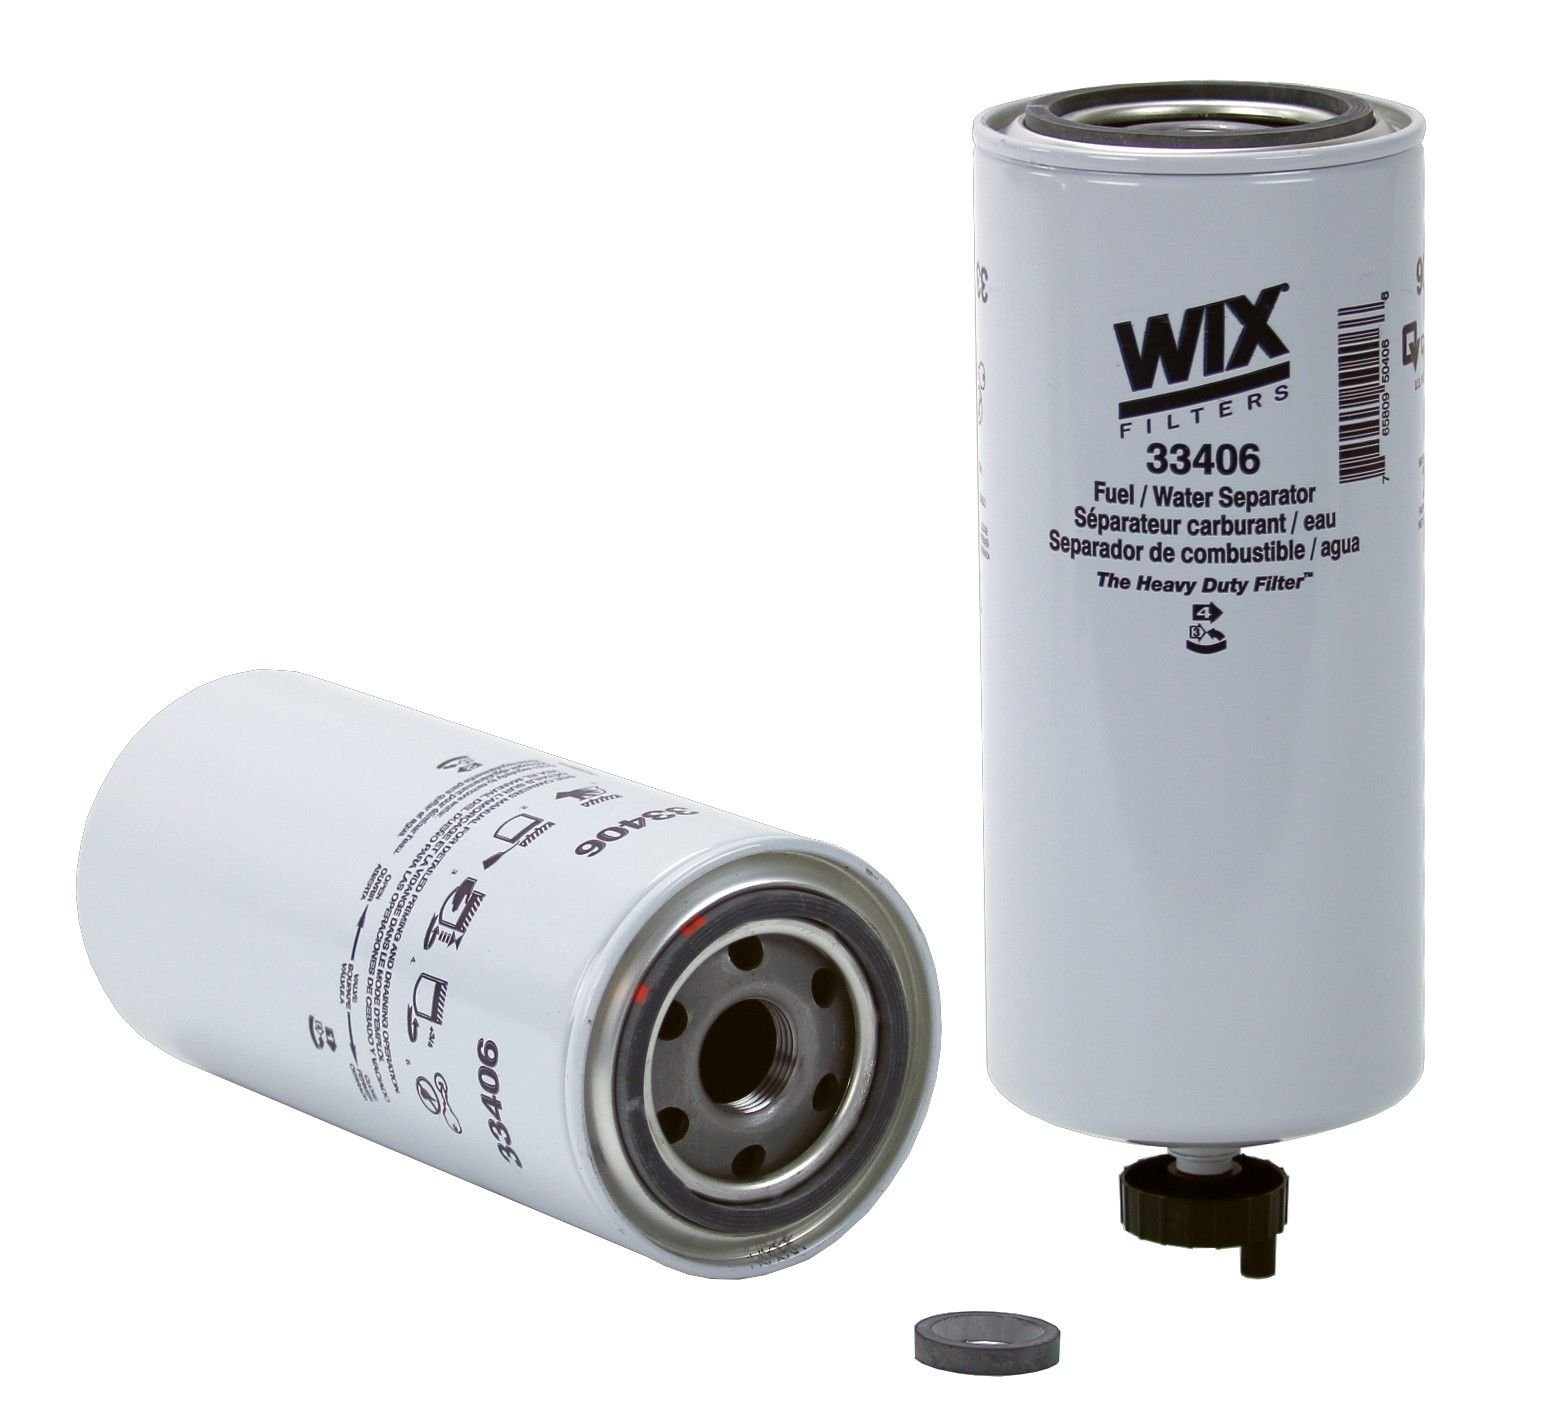 Volvo Vhd Fuel Filter Replacement Hastings Wix Go Parts 2003 6 Cyl 108l 33406